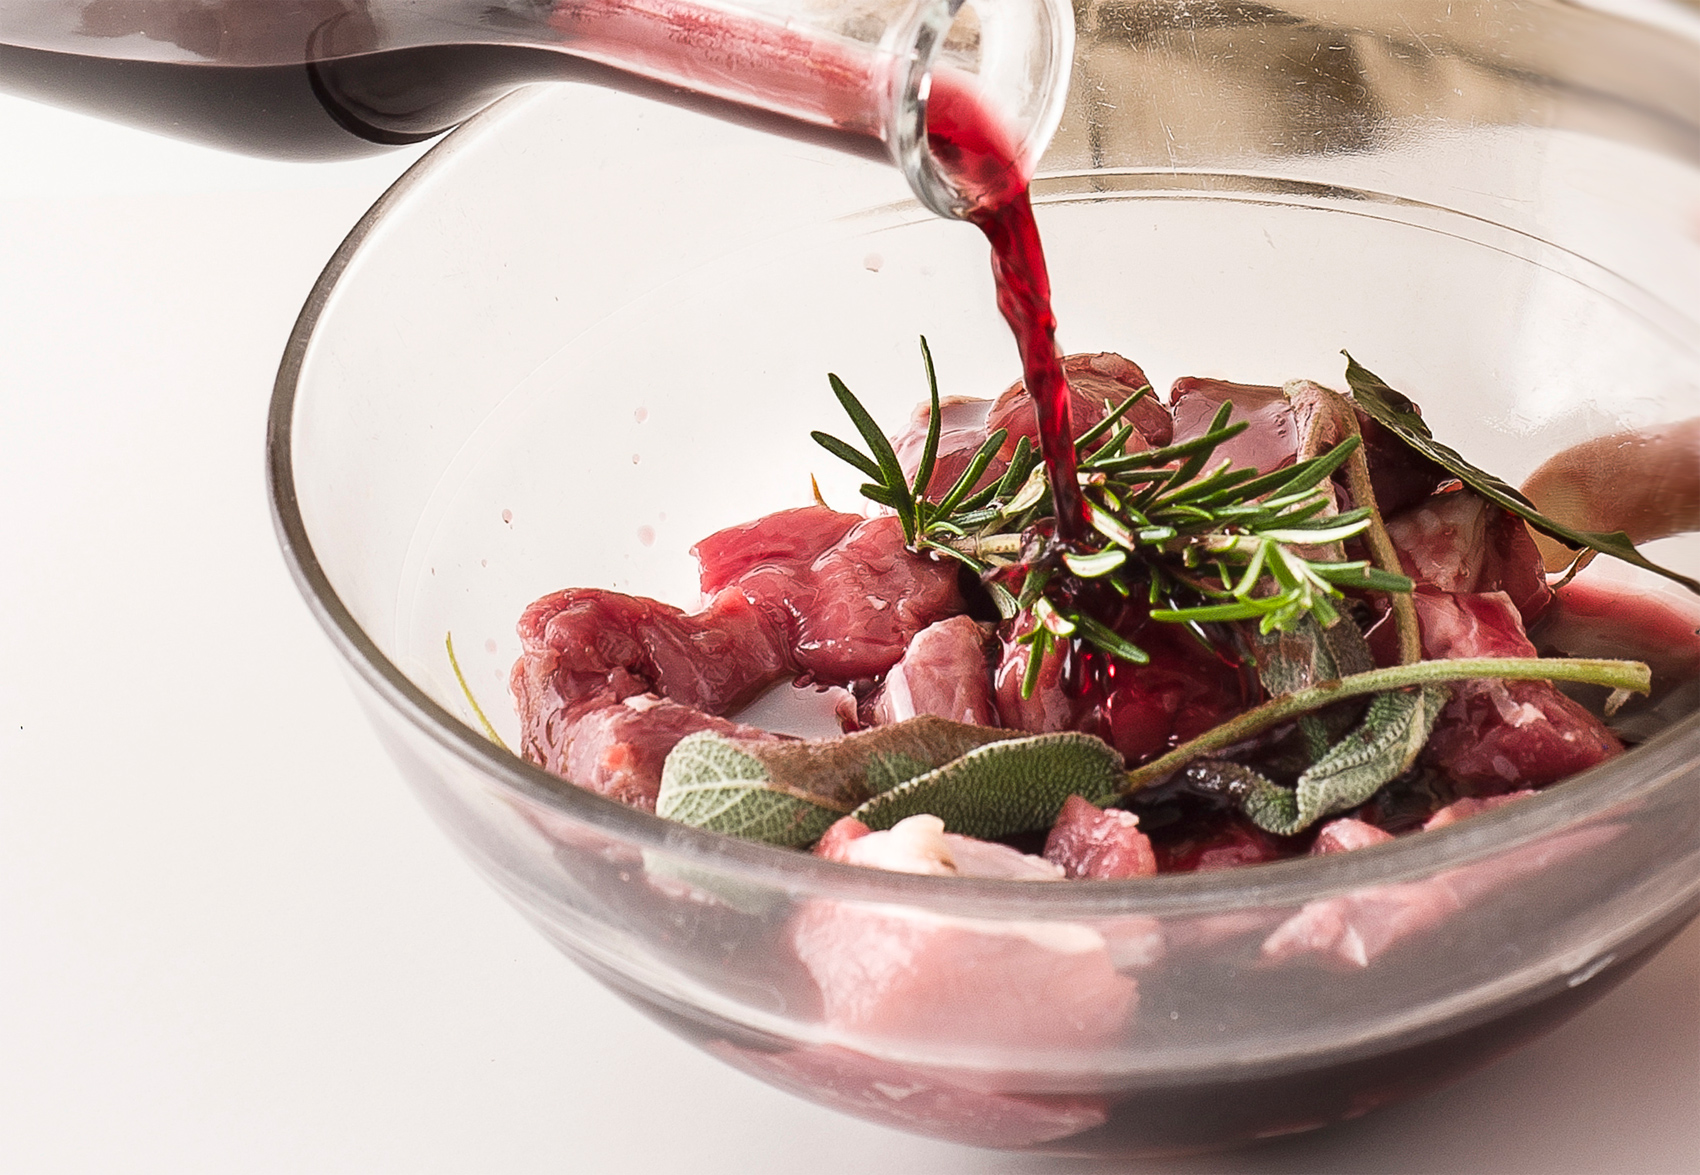 How to prepare and cook wild boar meat